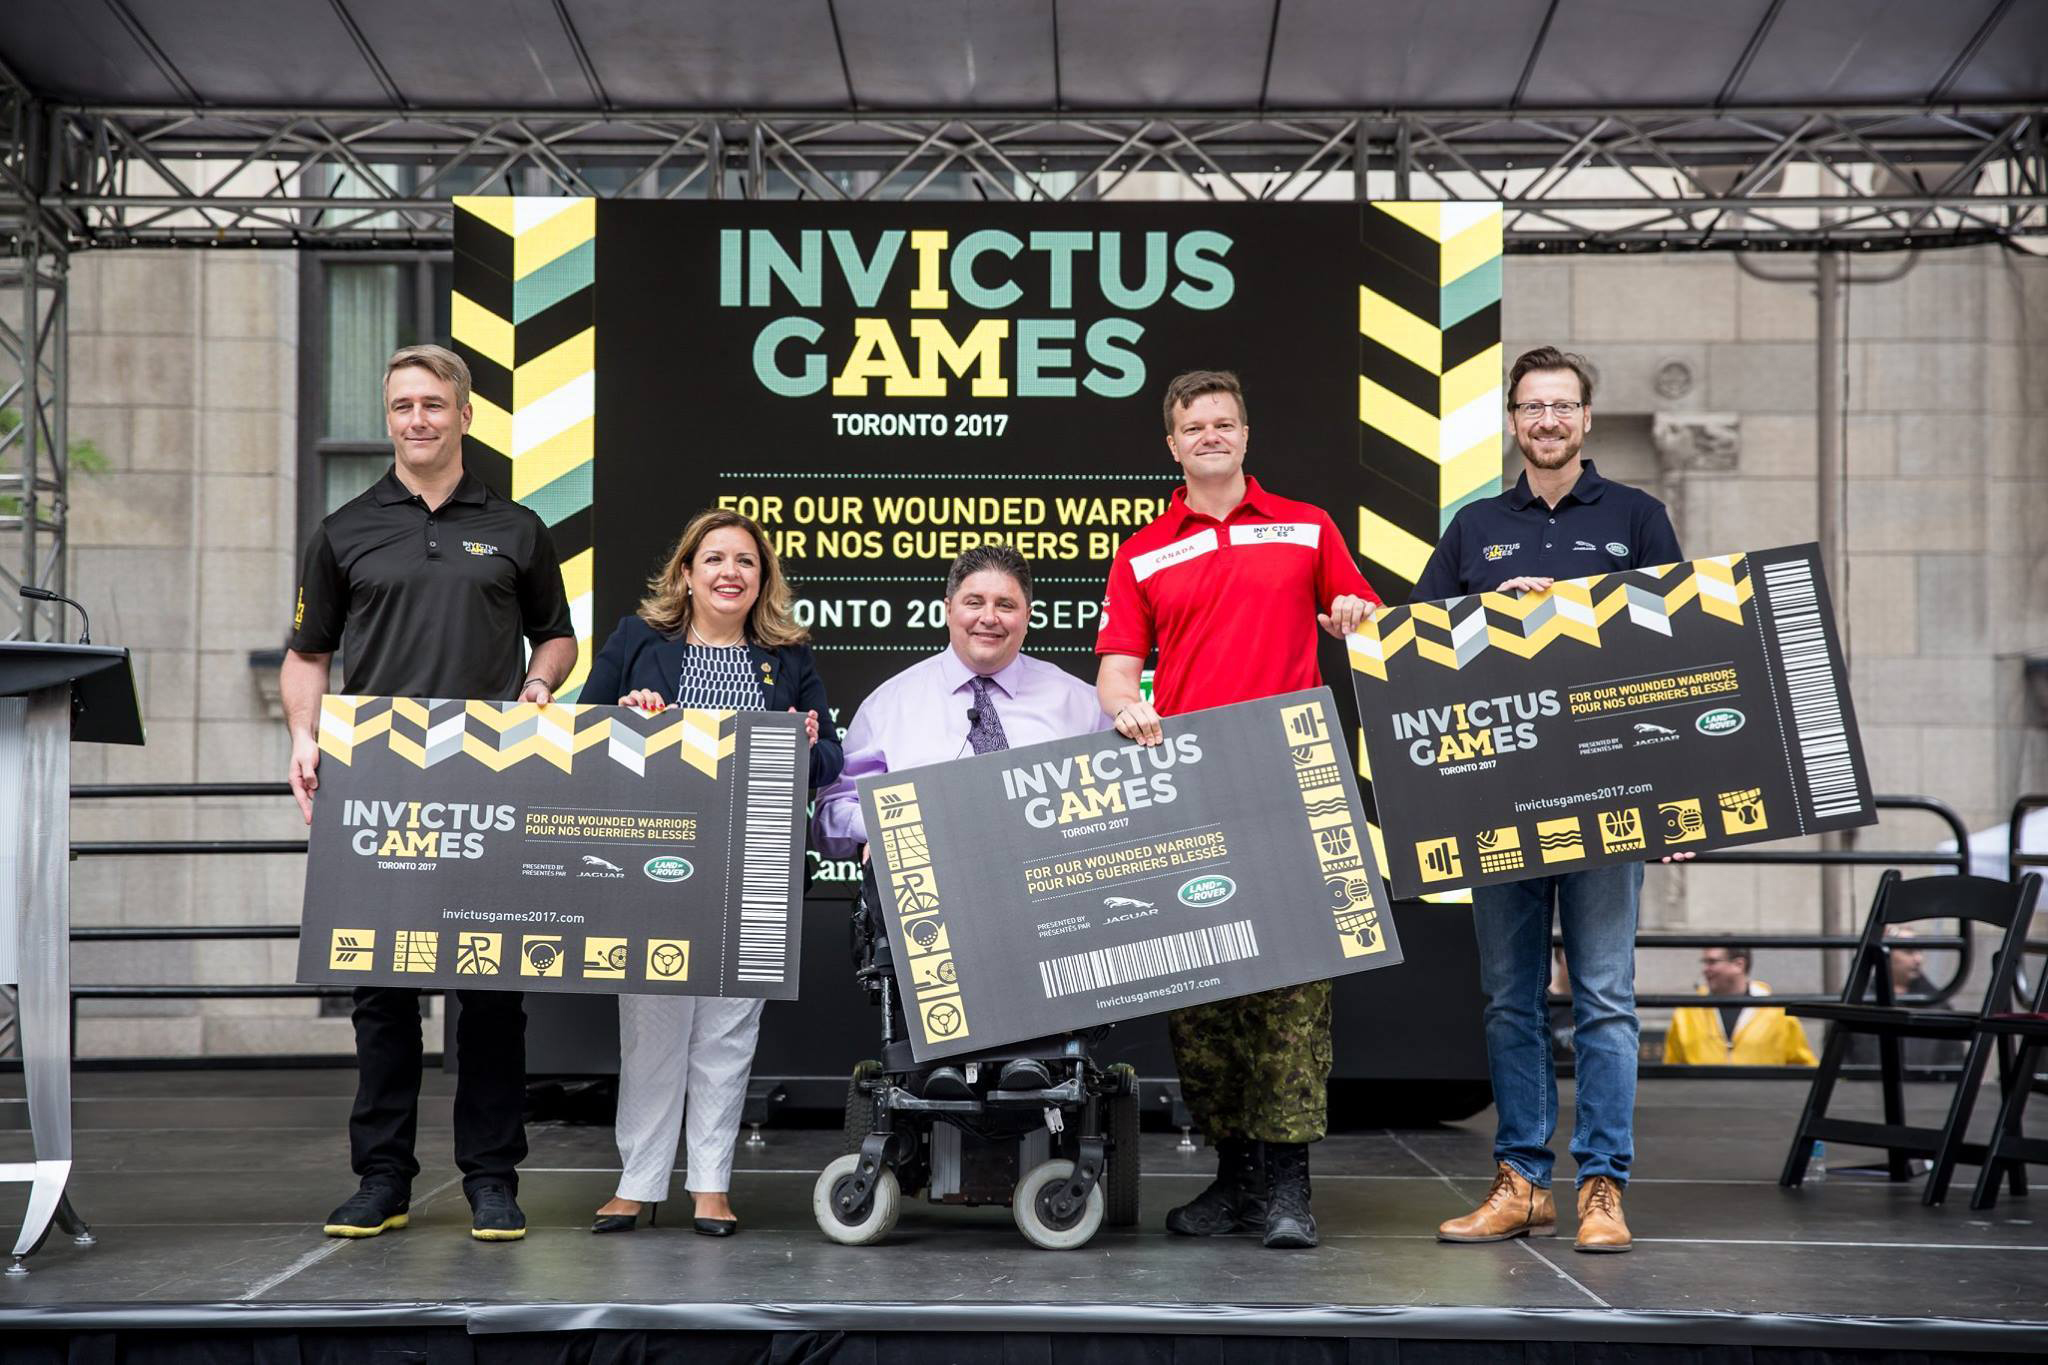 Veterans Affairs Minister Kent Hehr (centre) announced the federal government's $17.5-million contribution to the Games at the ticket launch on June 15. Also at the event were TPL co-founder Michael Burns (left), co-captain of the IG17 Team Canada, Maj Simon Mailloux (second from right), and other sponsors such as Jaguar Land Rover.